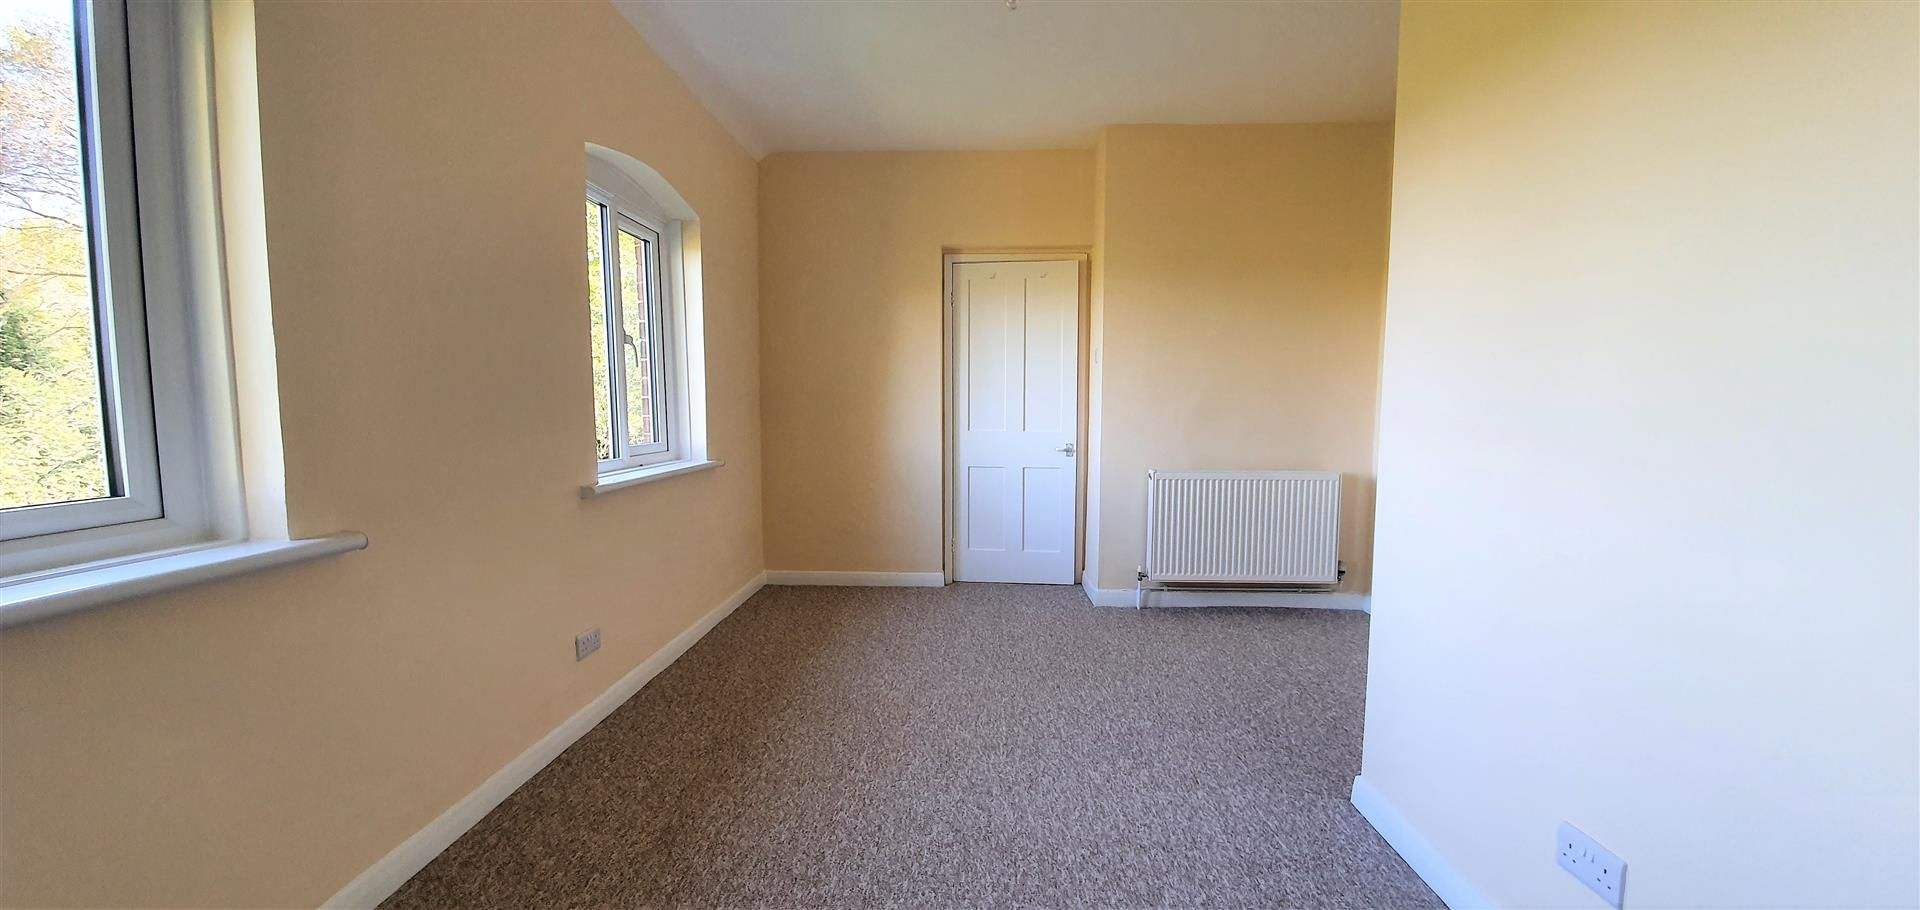 4 bed house to rent in Breinton  - Property Image 9